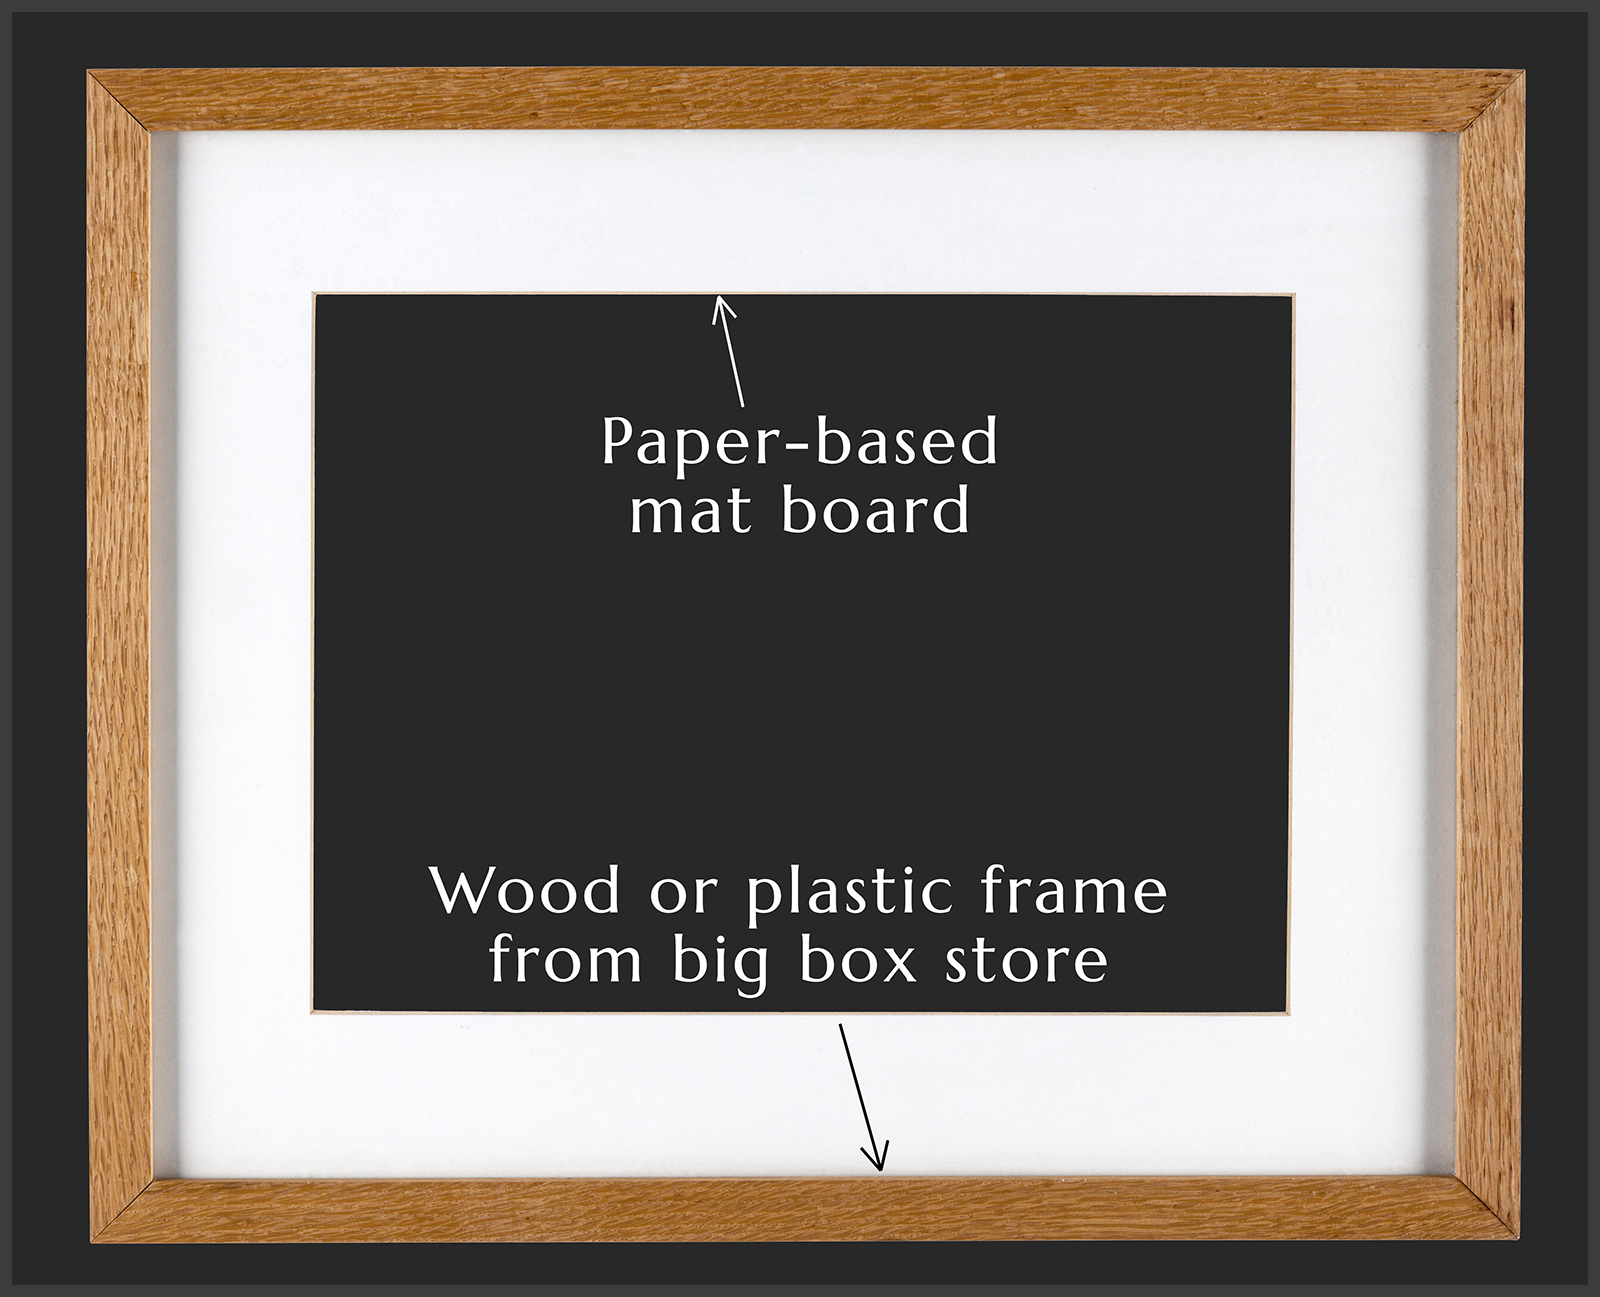 Diagram with empty brown oak picture frame and white matte board to illustrate craft or box store purchase.